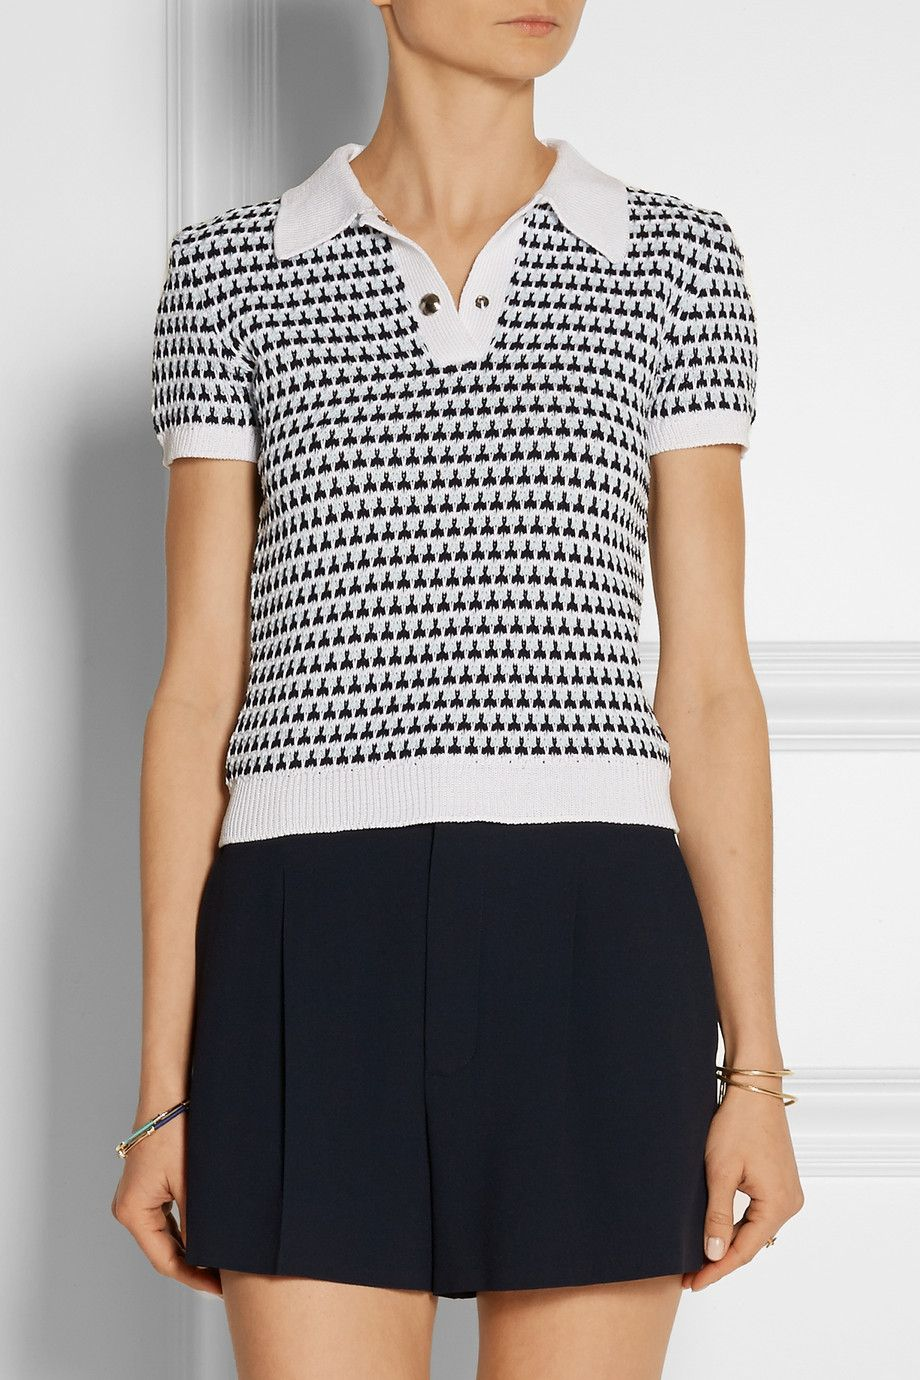 696beca62b2 This polo shirt from Miu Miu is indeed crocheted -- spike stitch!